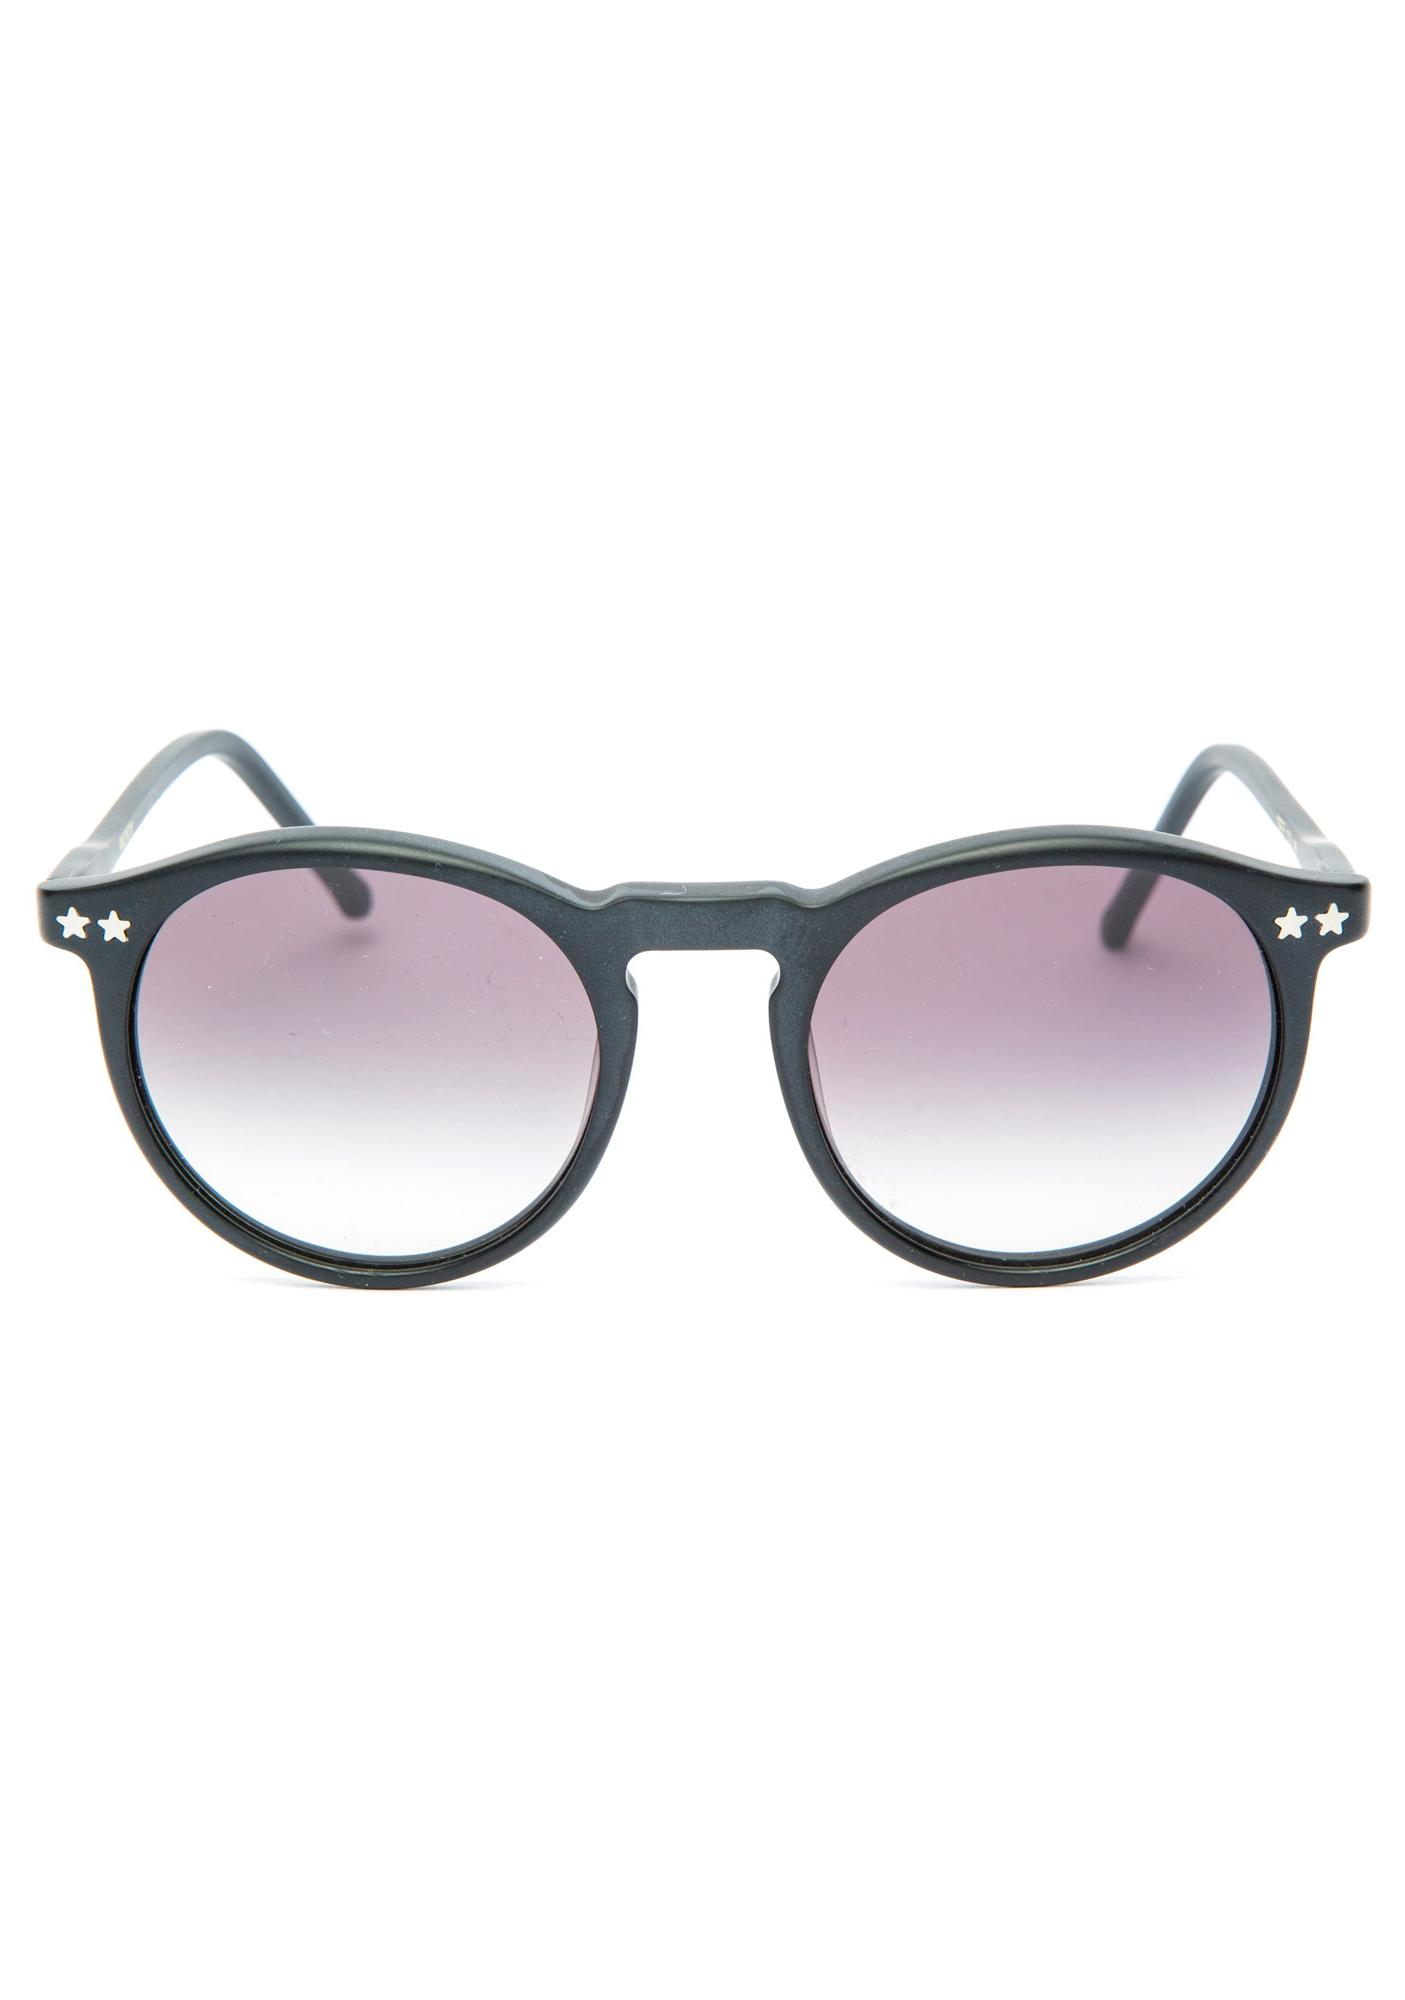 Wildfox Couture Steff Sunwear Sunglasses